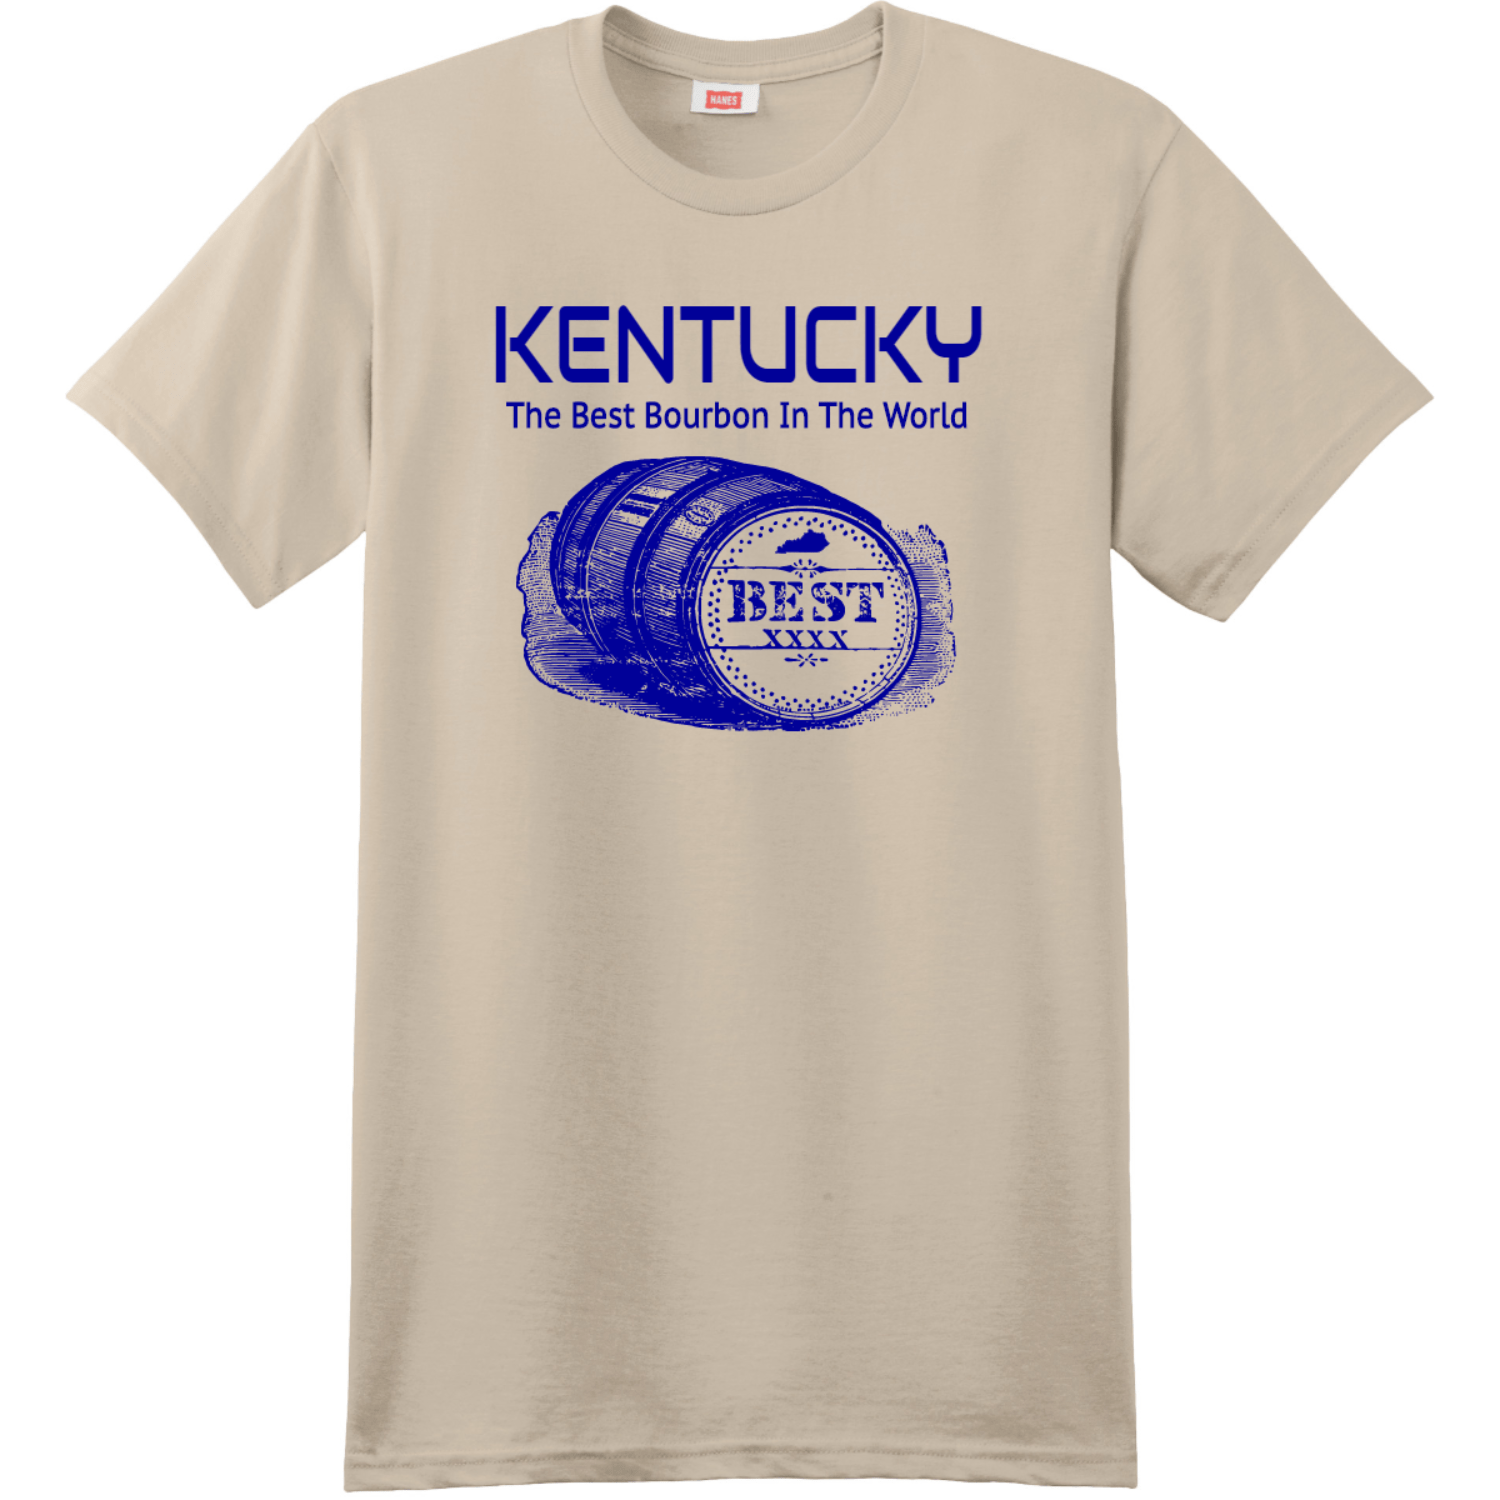 Kentucky The Best Bourbon In The World T-Shirt Sand Hanes Nano 4980 Ringspun Cotton T Shirt